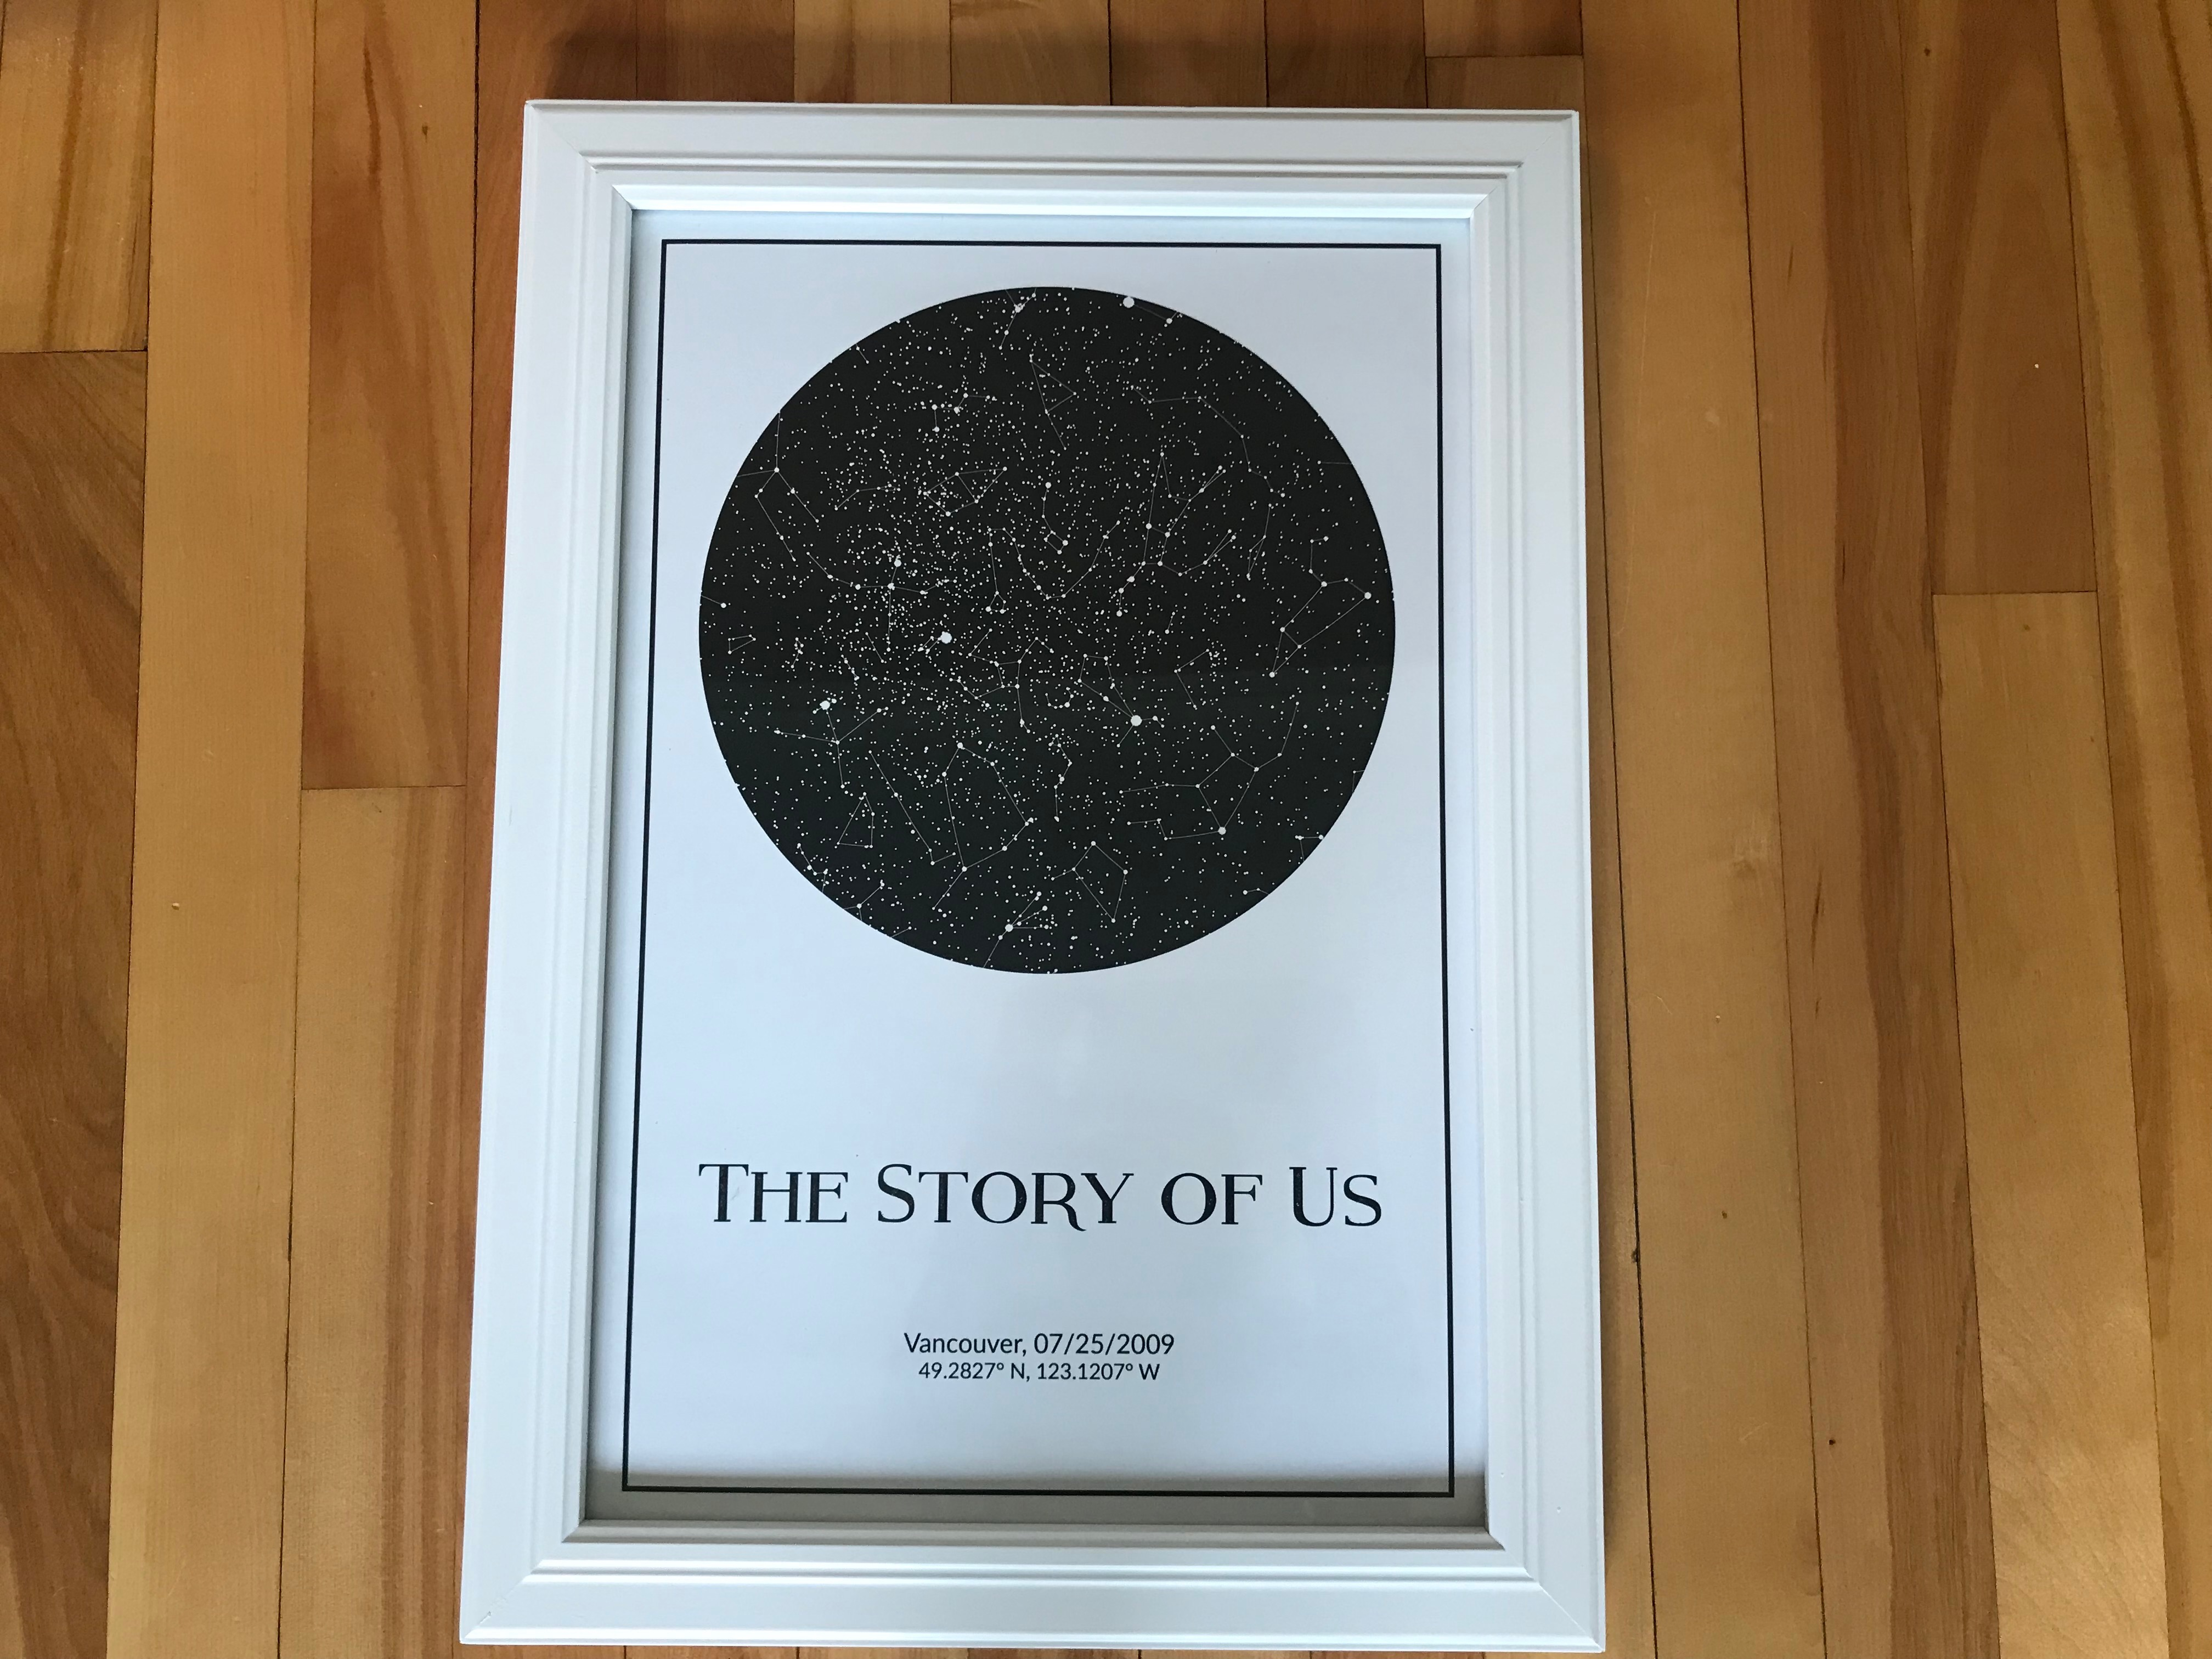 What Is A Star Map.Celebrating Our Family S Story With A Star Map Embracing Ottawa